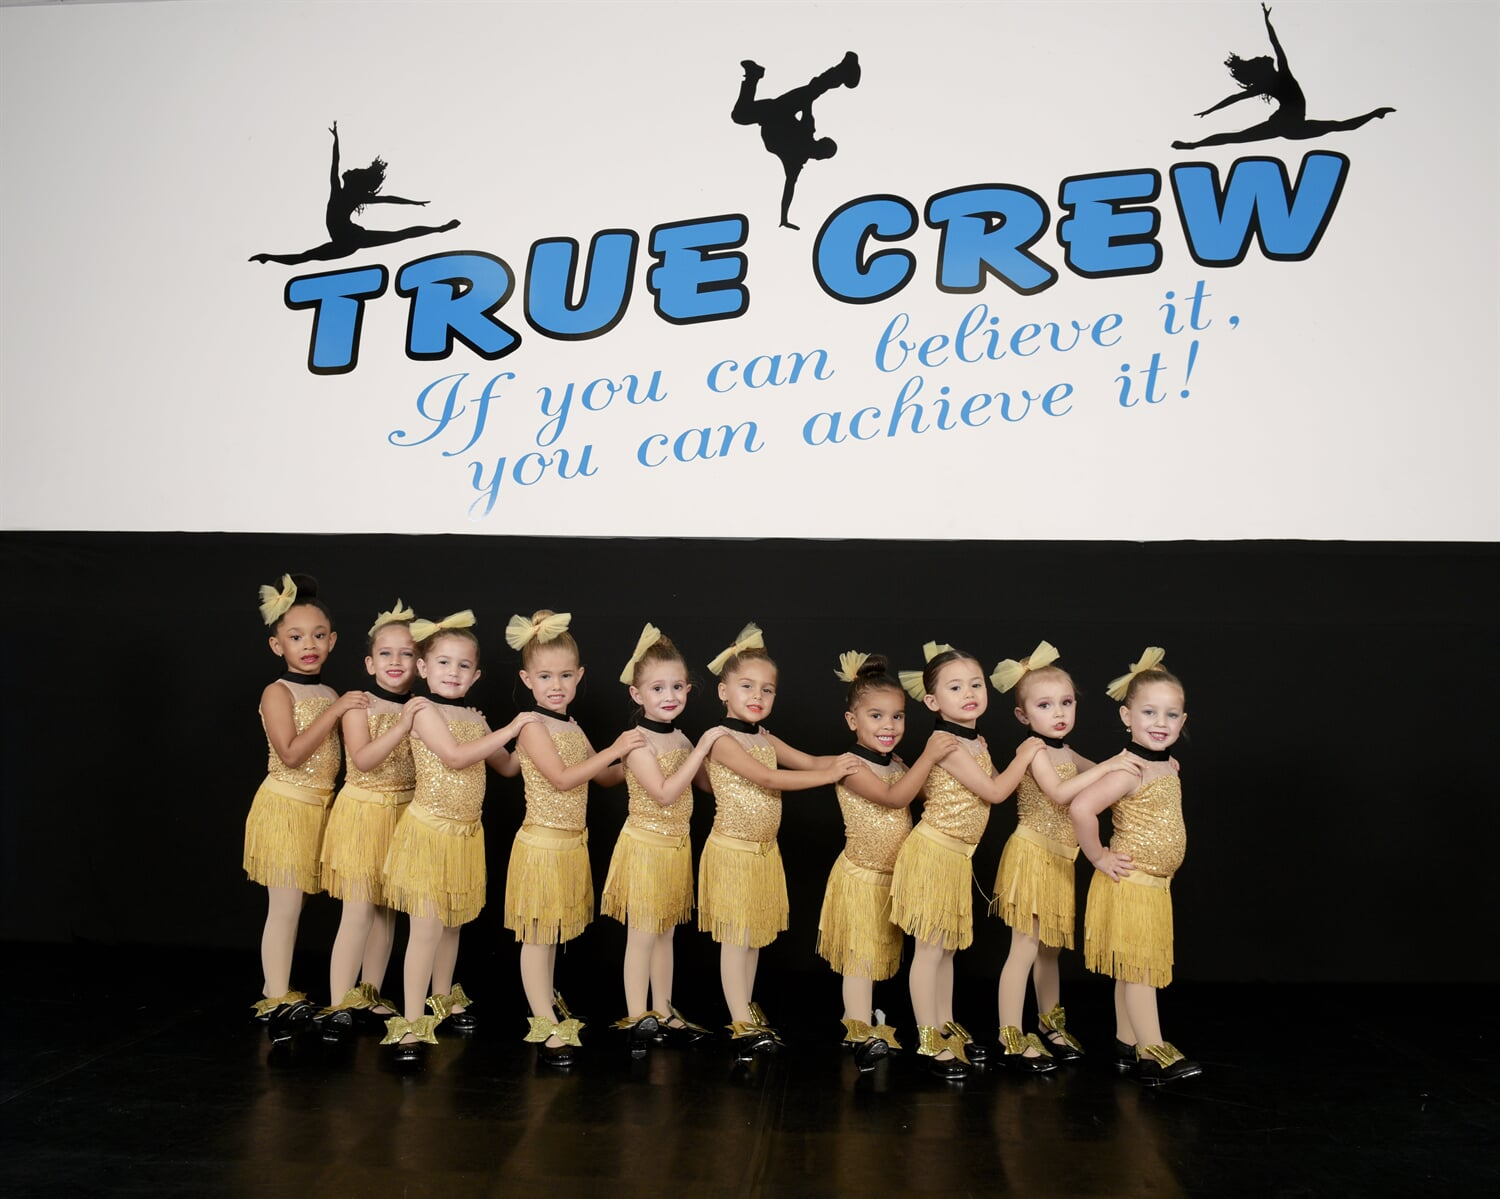 Group of little girls posing in yellow dance costumes